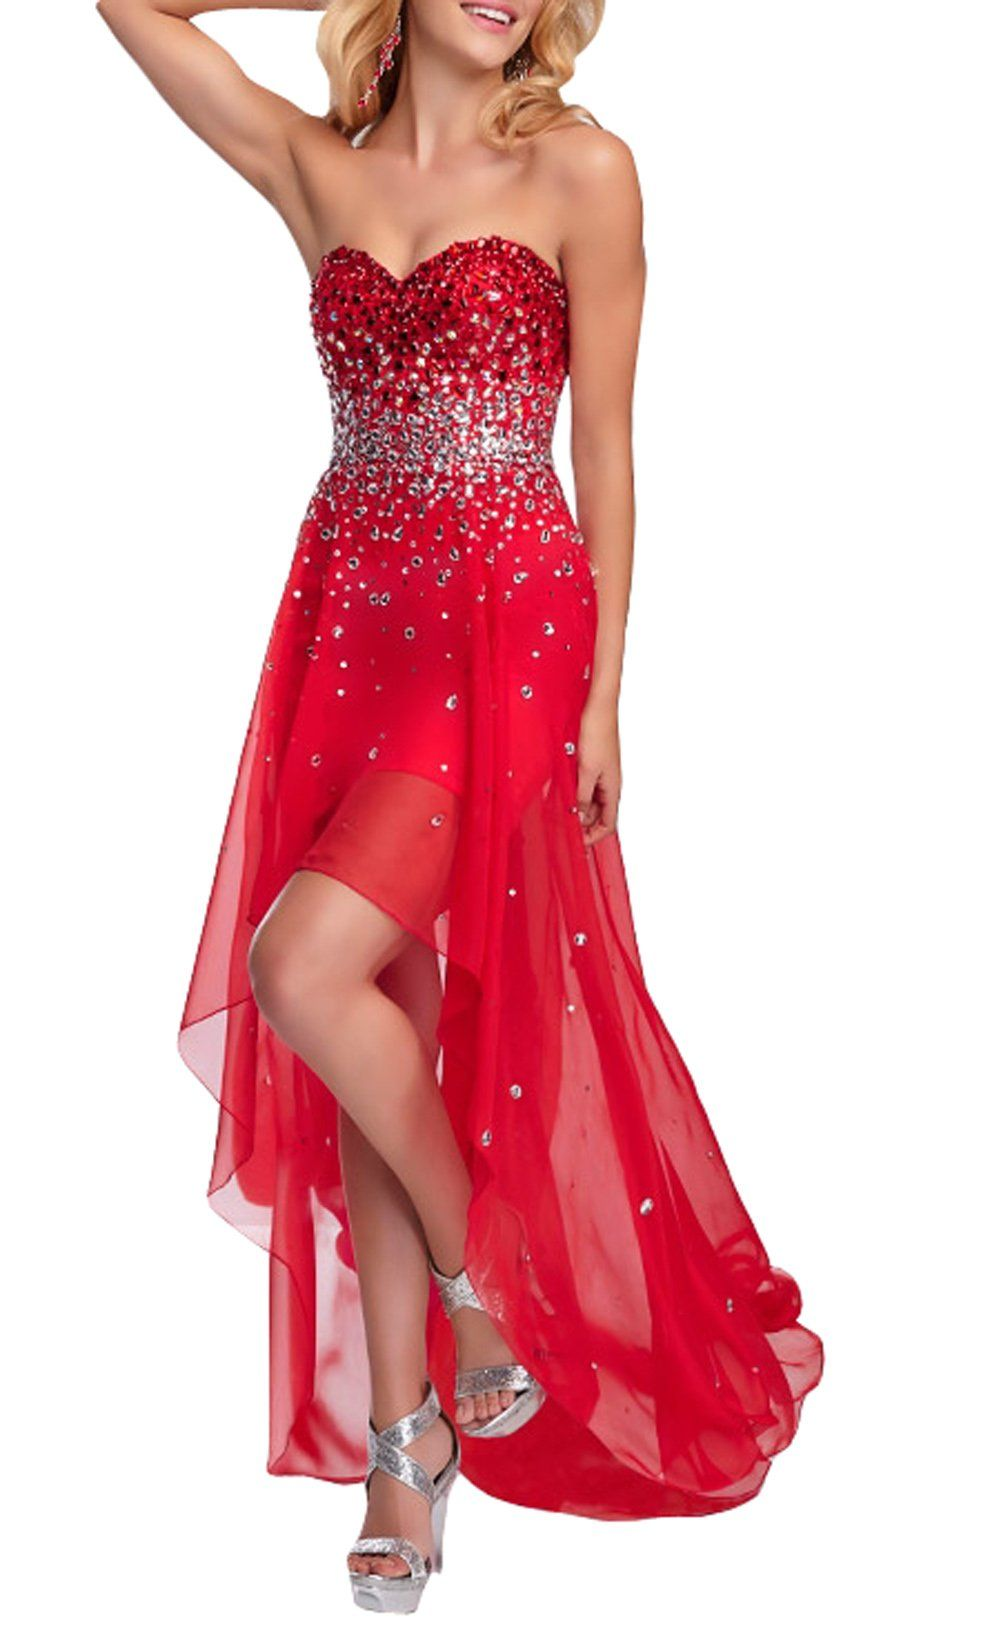 Dapene womenus sweetheart neckline rhinestone high low formal dress